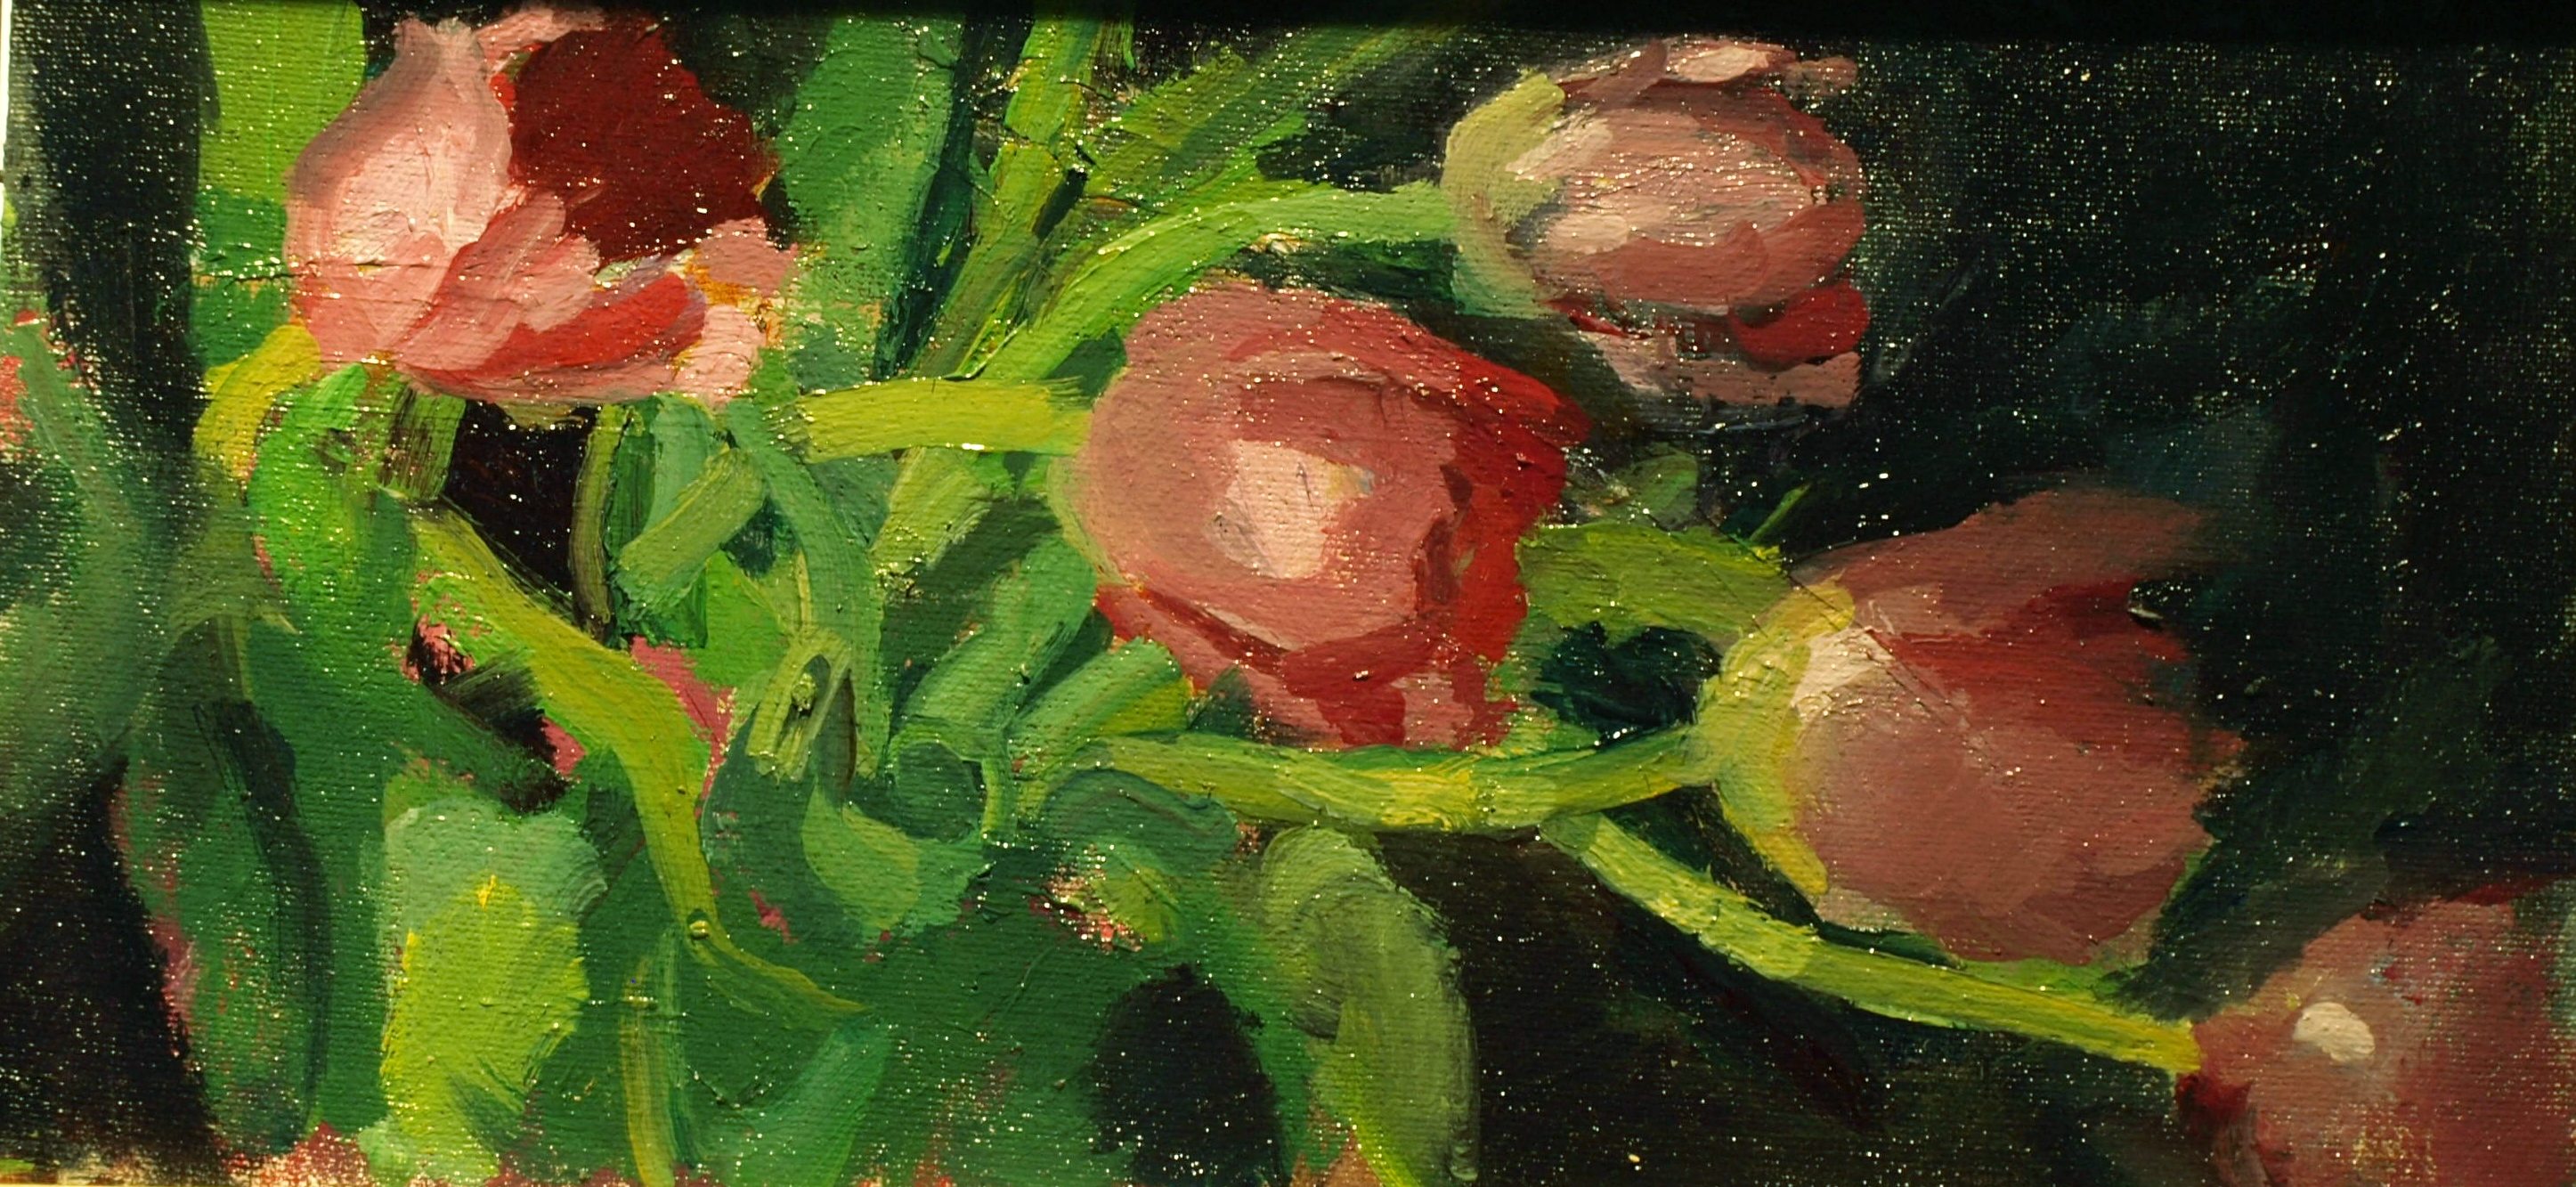 Dancing Tulips, Oil on Canvas on Panel, 6 x 12 Inches, by Susan Grisell, $200